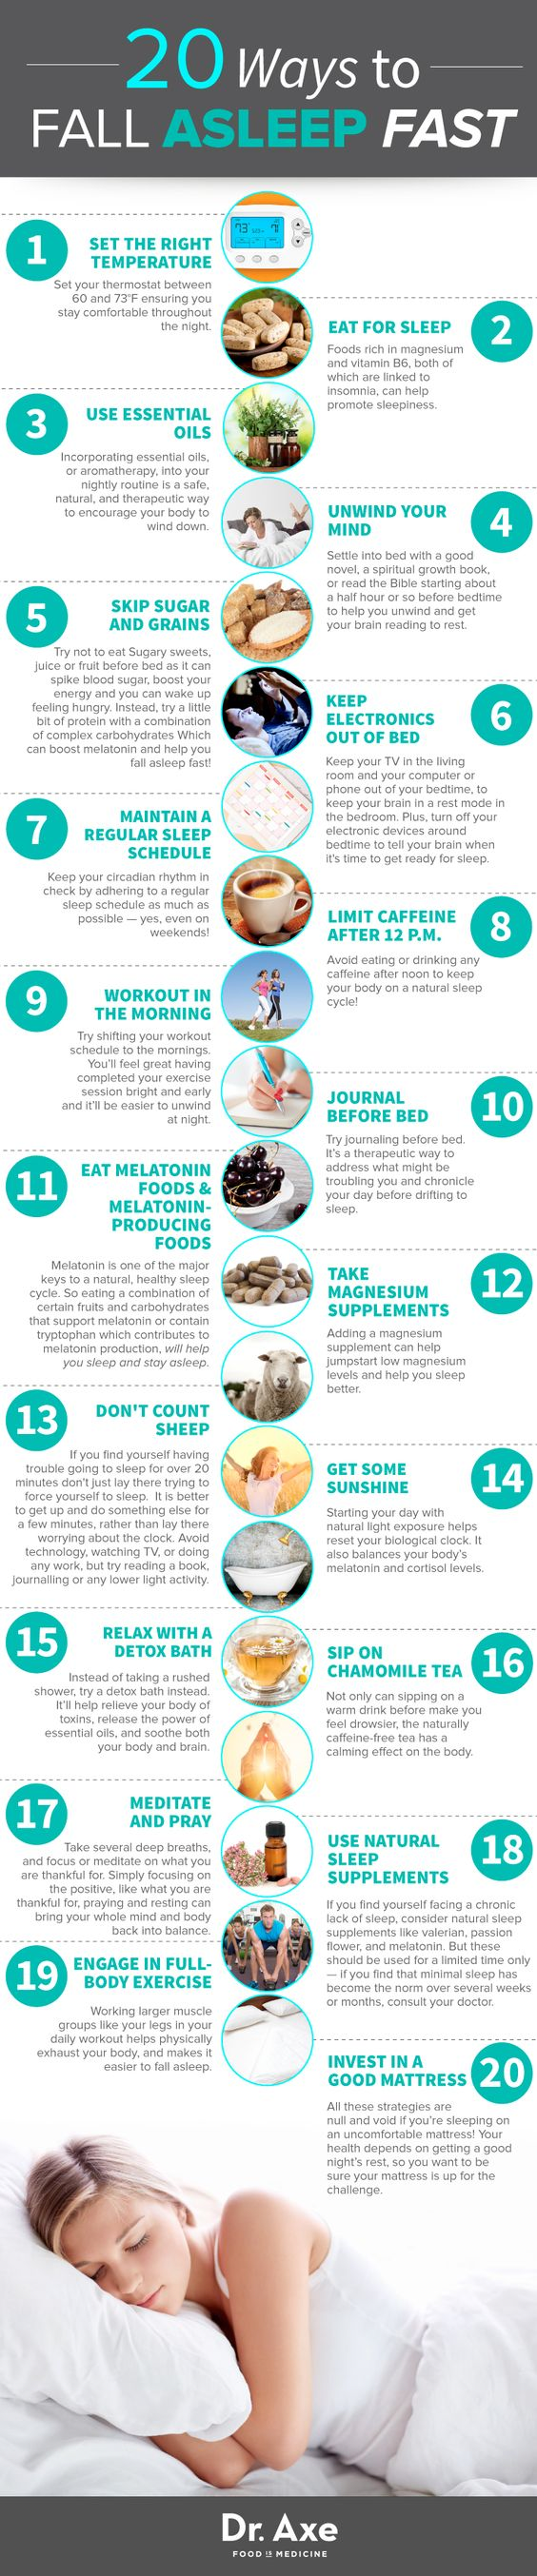 20 ways to fall asleep fast http://www.draxe.com #health #holistic #natural